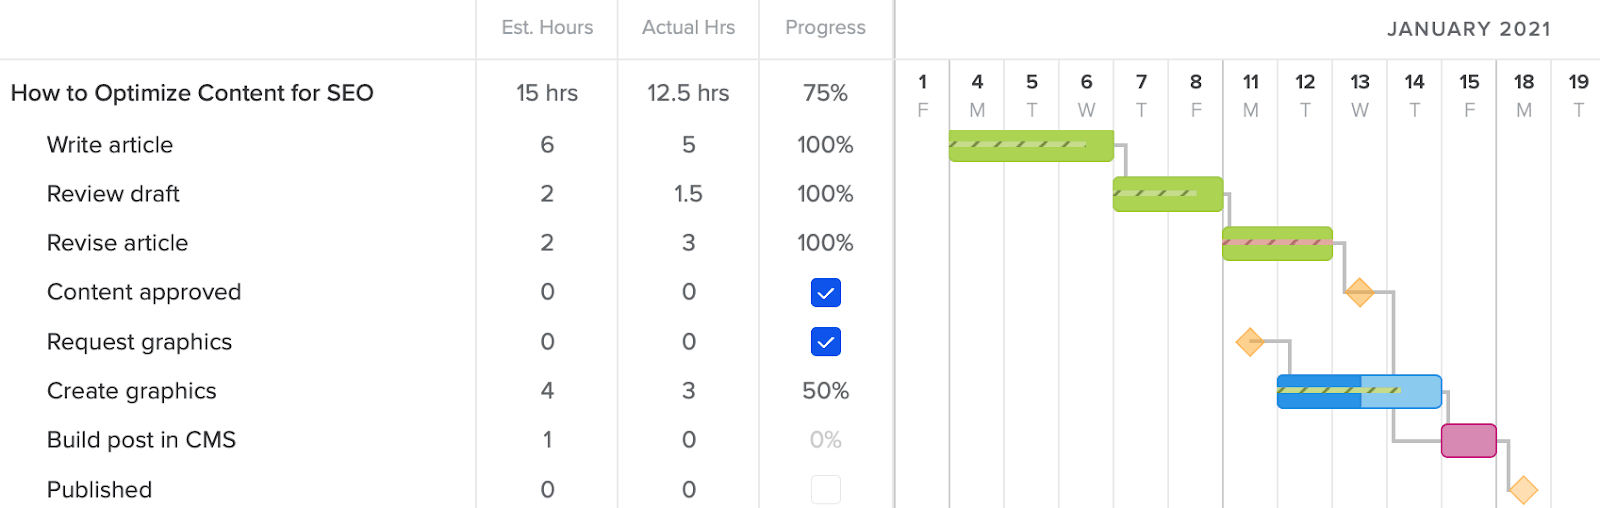 Gantt chart with estimated hours vs actual time and progress indicators showing in taskbars